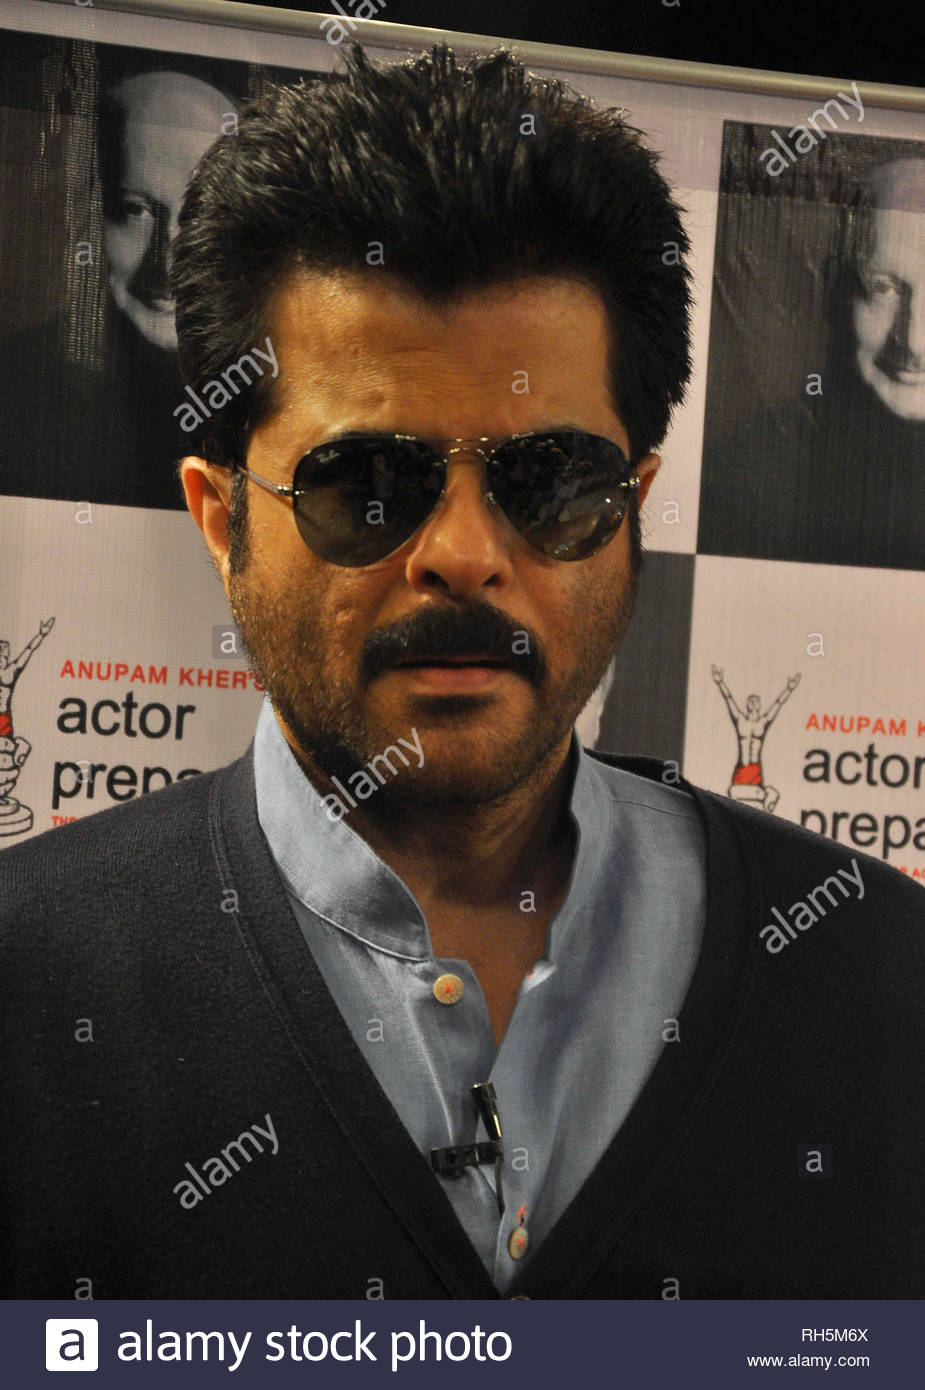 Bollywood actor Anil Kapoor arrives for a Master Class lecture with students of Anupam Kher's Actors Prepares Acting School in Mumbai, India on July 18, 2013. (Deven Lad) - Stock Image